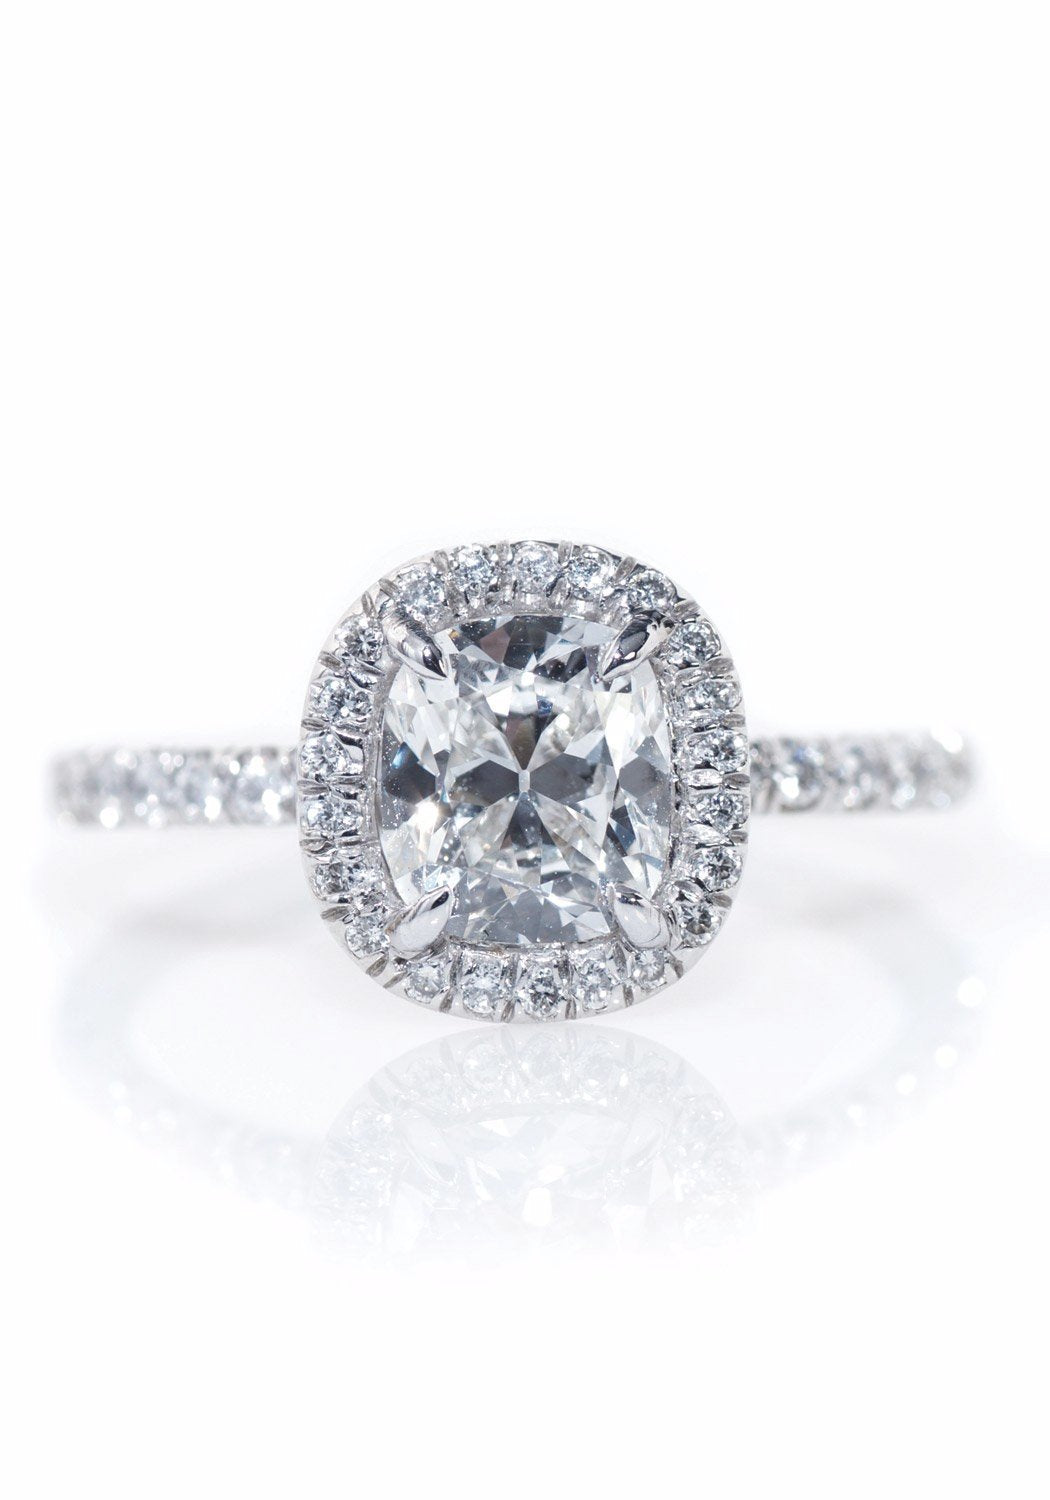 Louis Glick  Cushion Cut Halo Diamond Ring